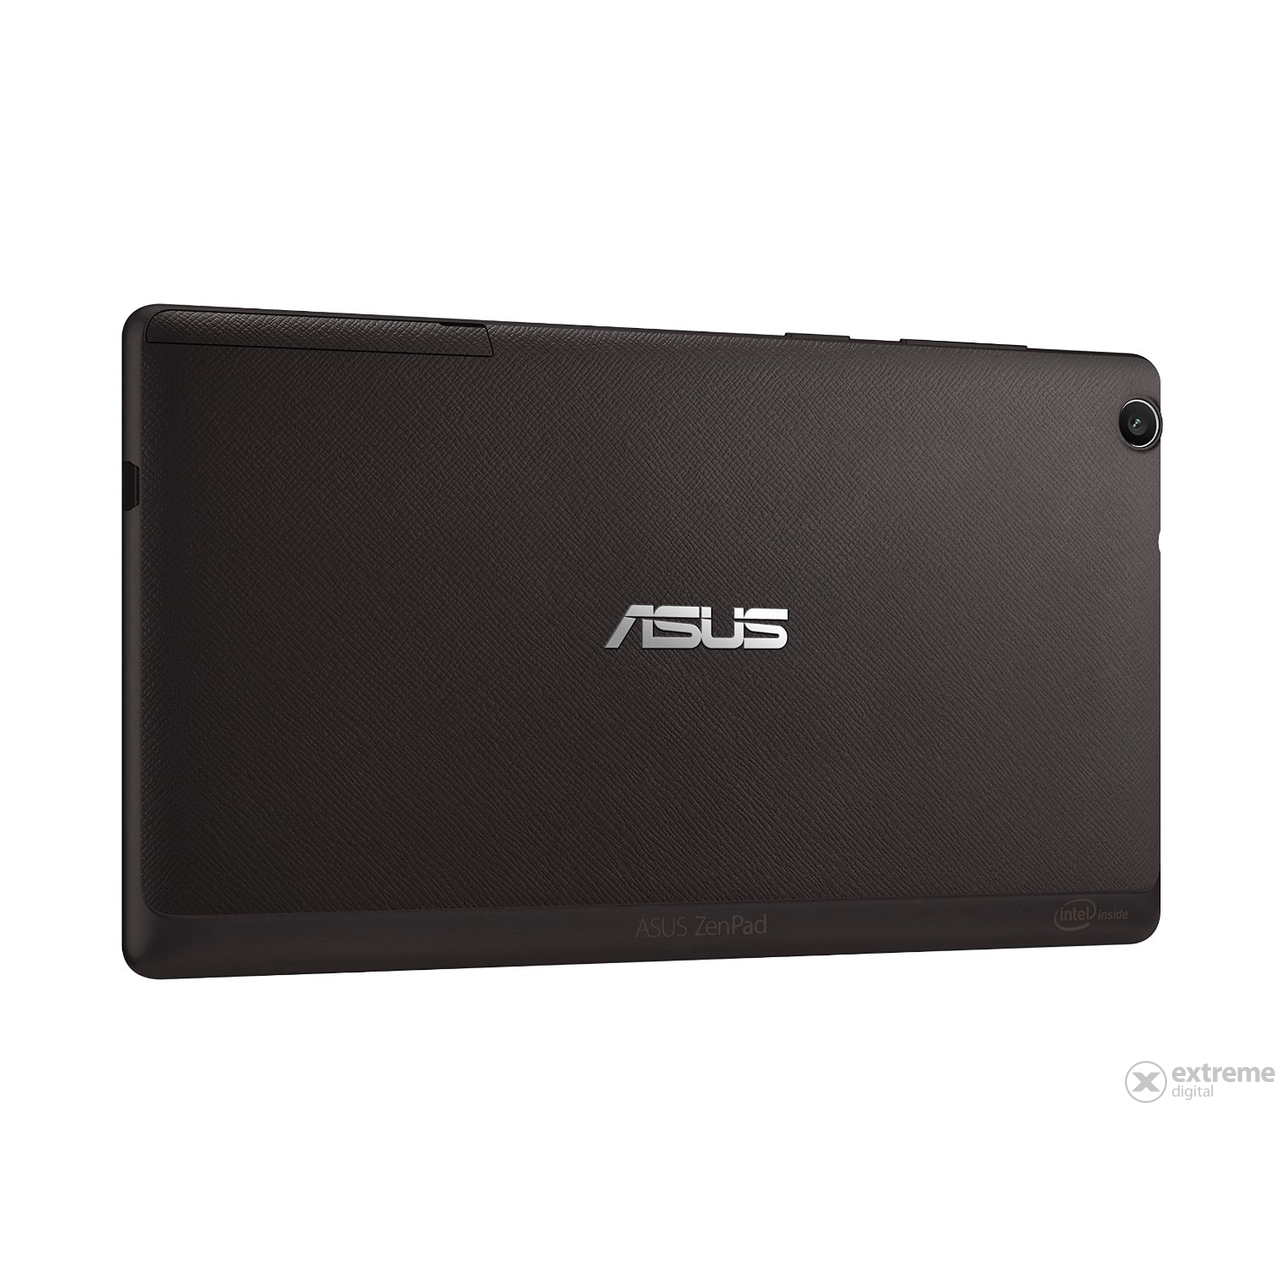 asus-zenpad-z170c-1a016a-16gb-wifi-tablet-black-android_42dd239f.jpg